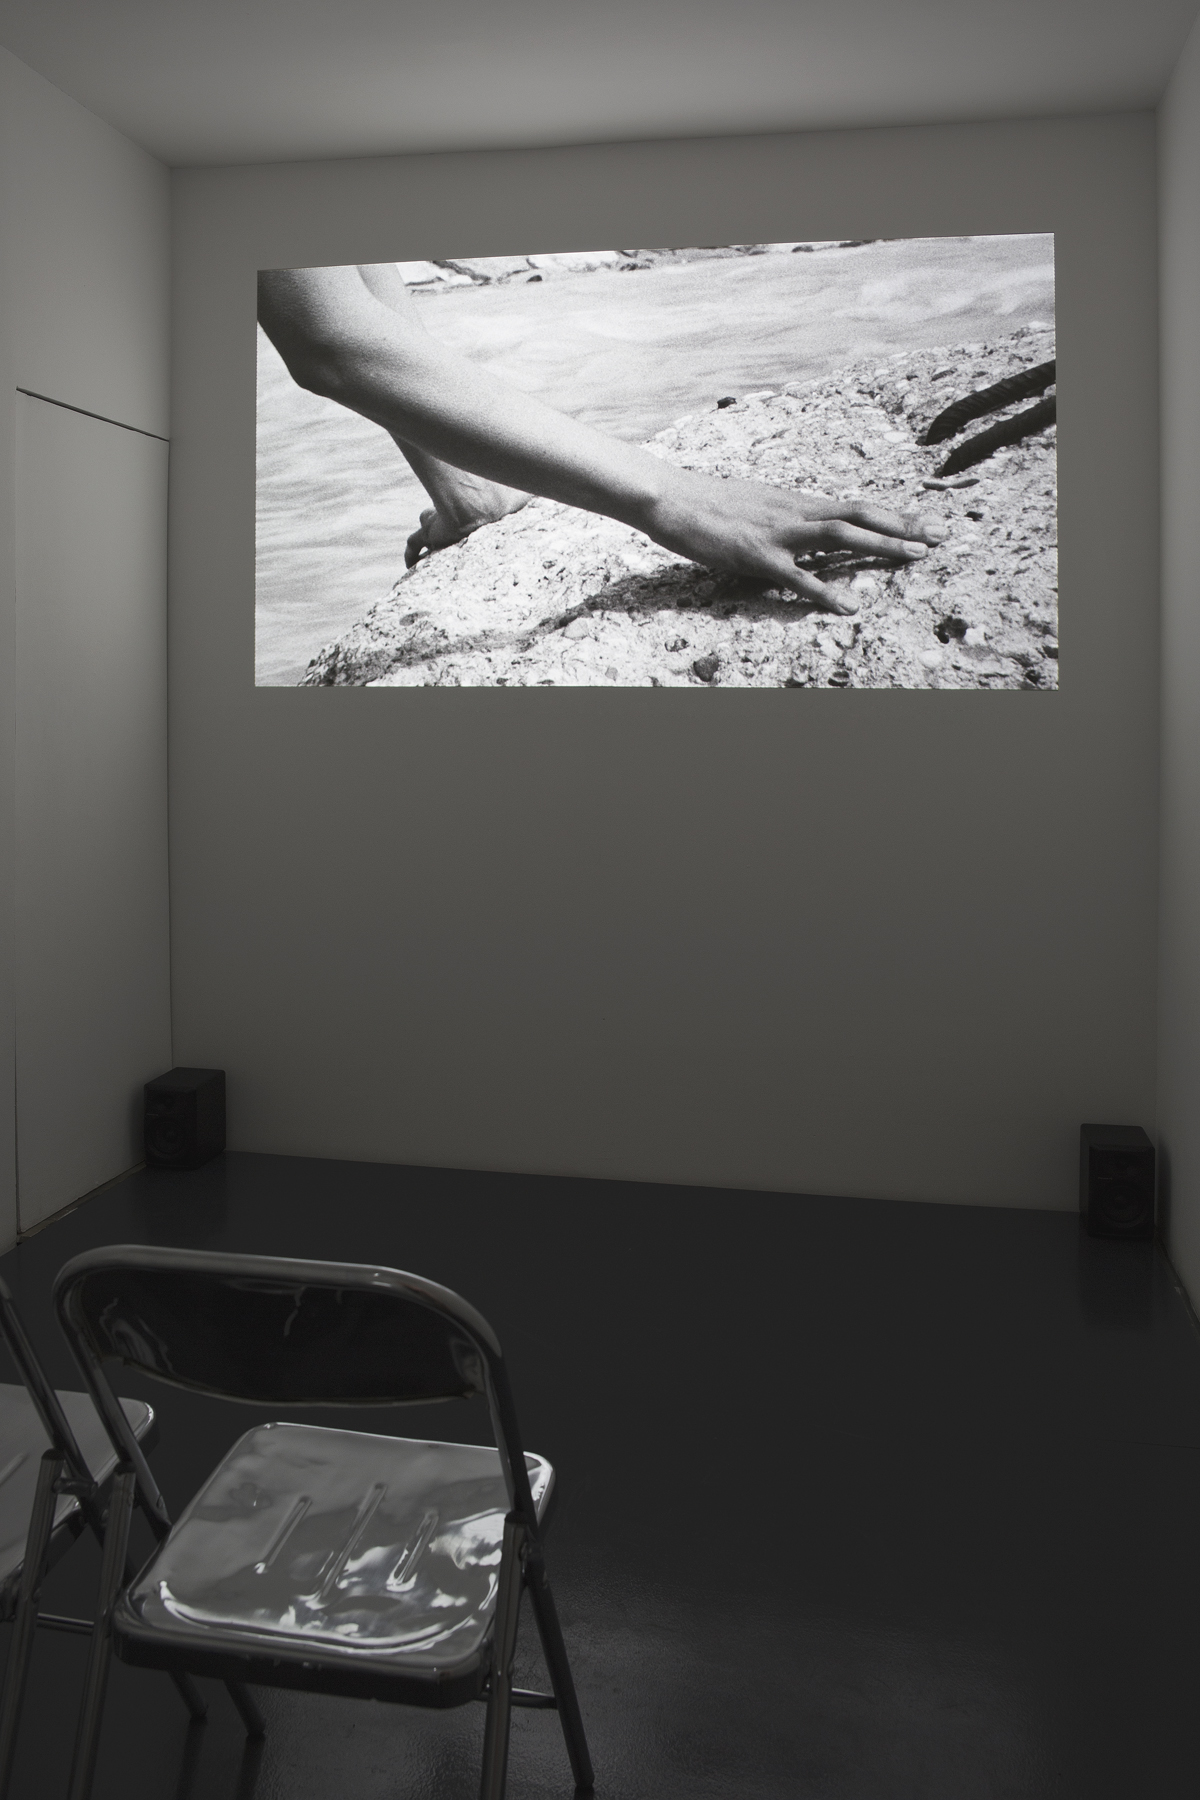 Installation view. Film projection: River Plate